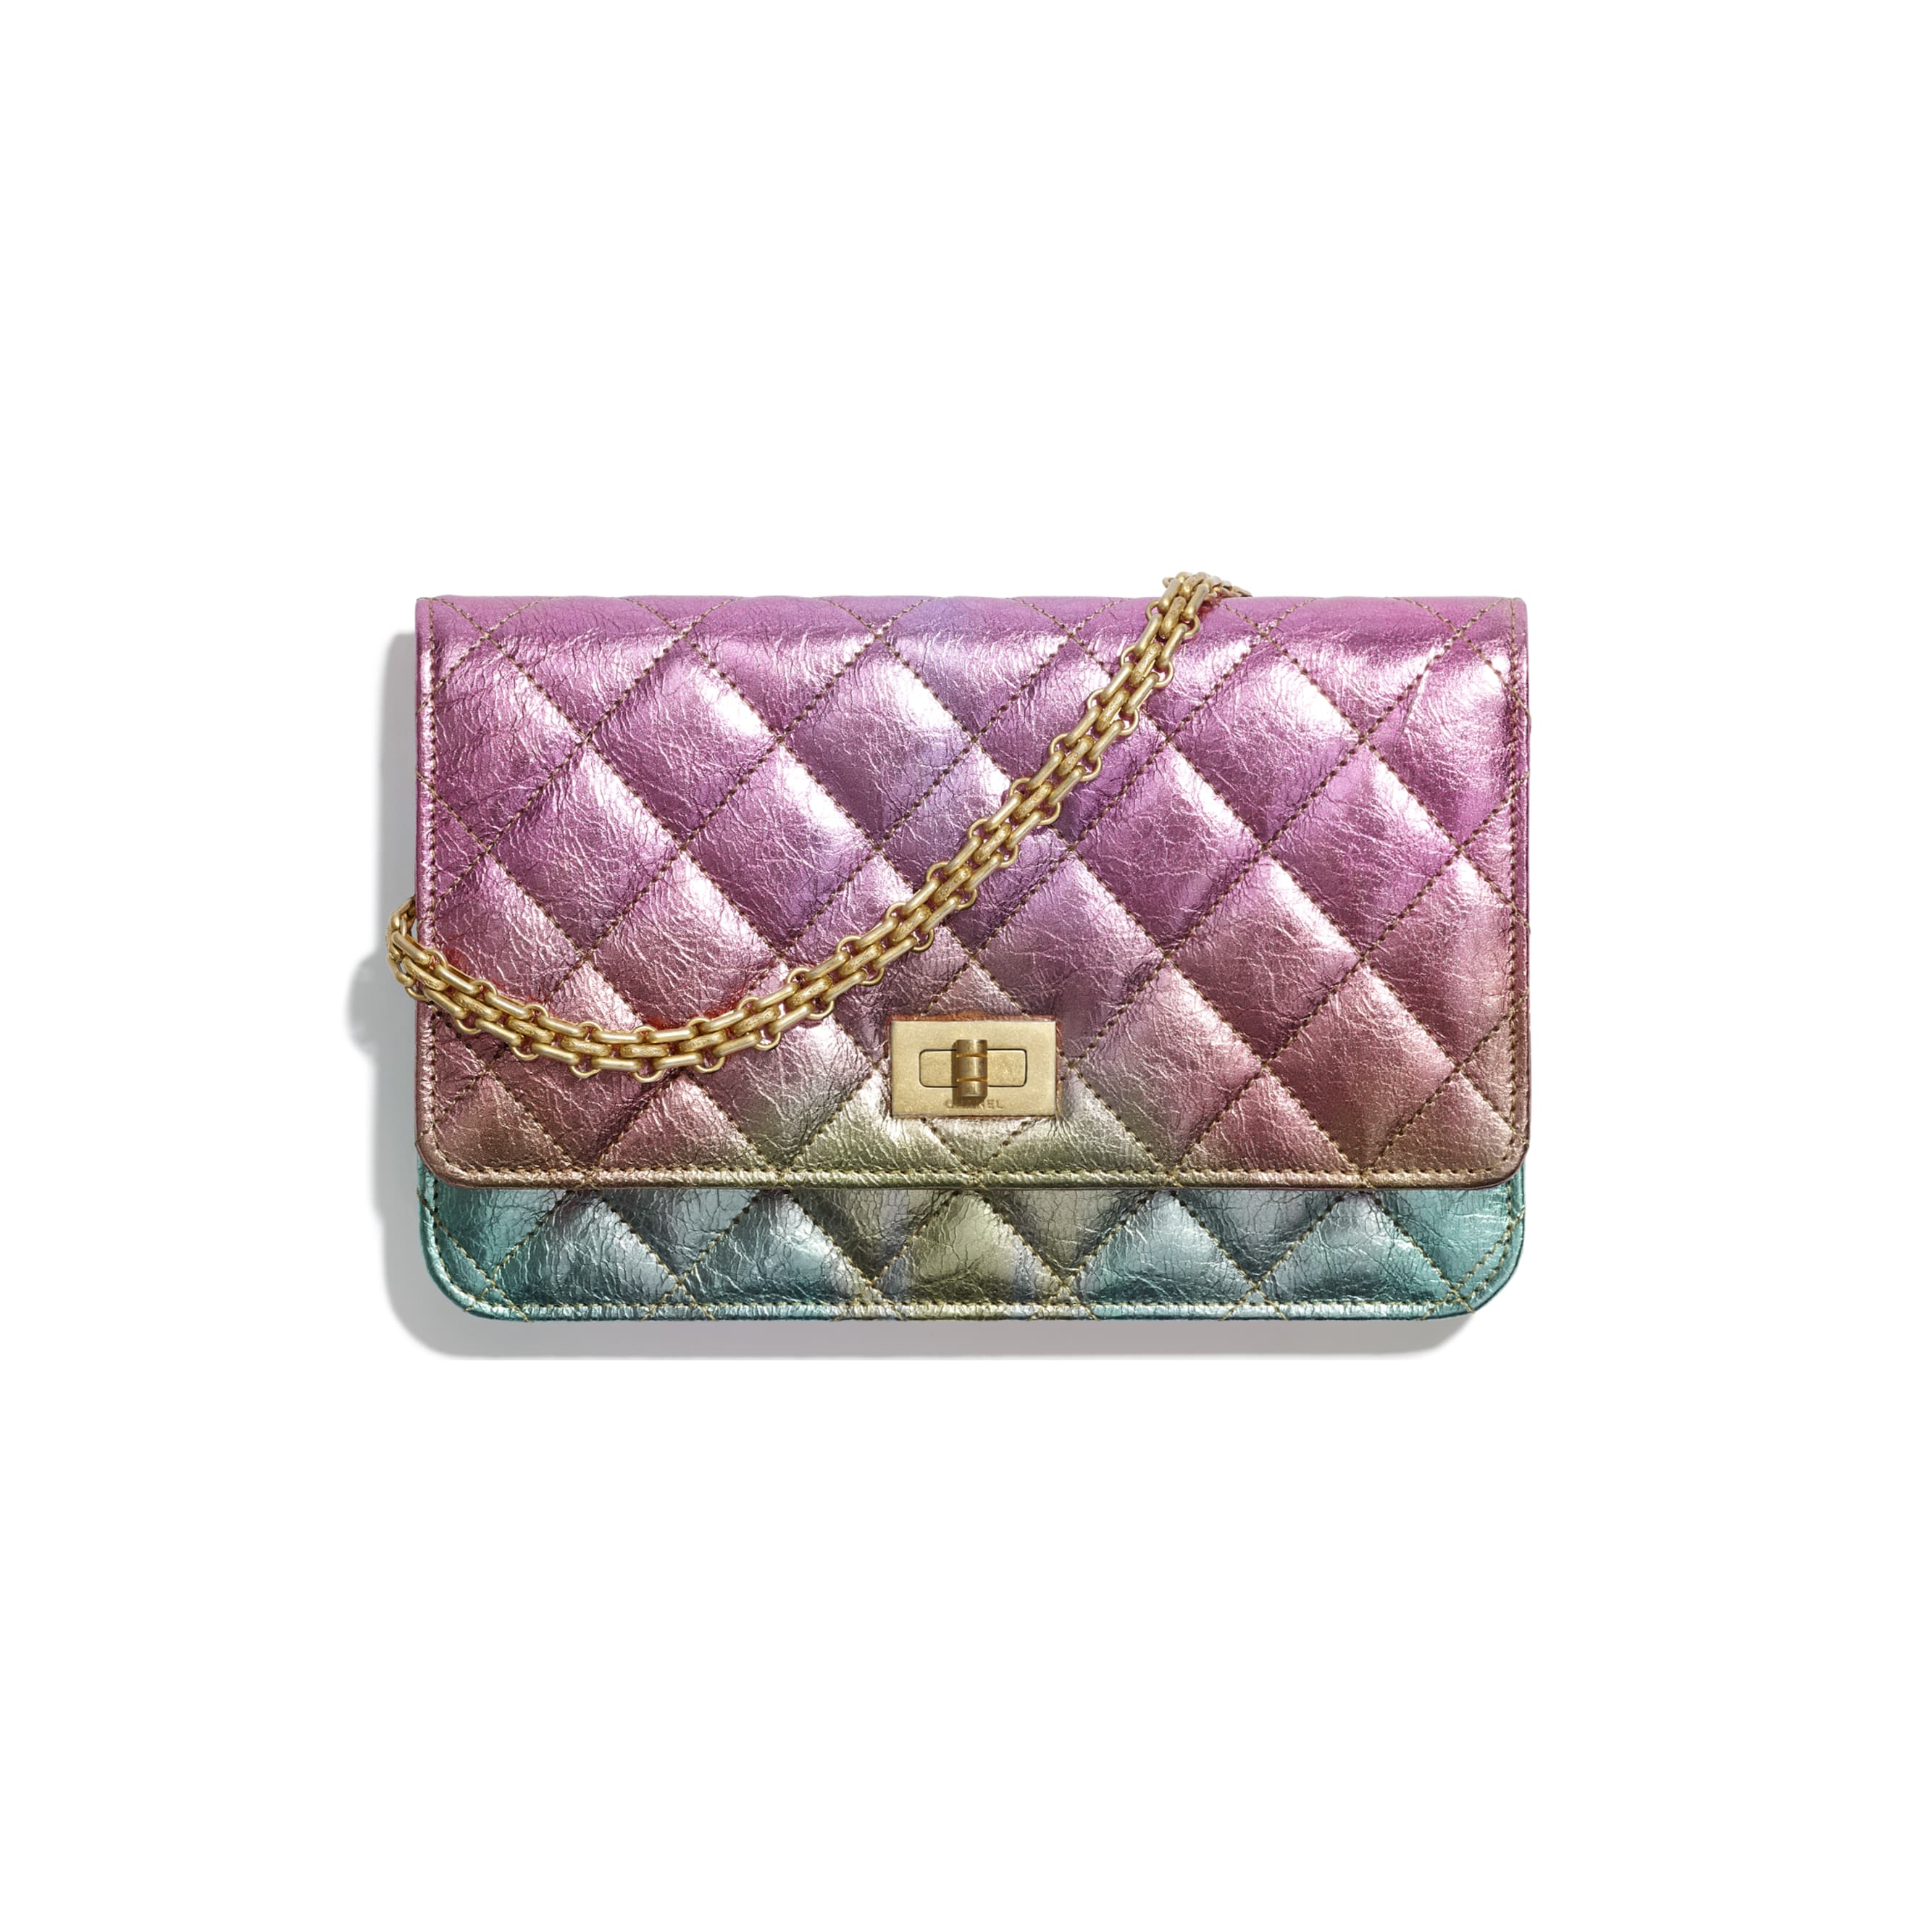 2.55 Wallet On Chain - Multicolour - Metallic Goatskin & Gold-Tone Metal - CHANEL - Default view - see standard sized version